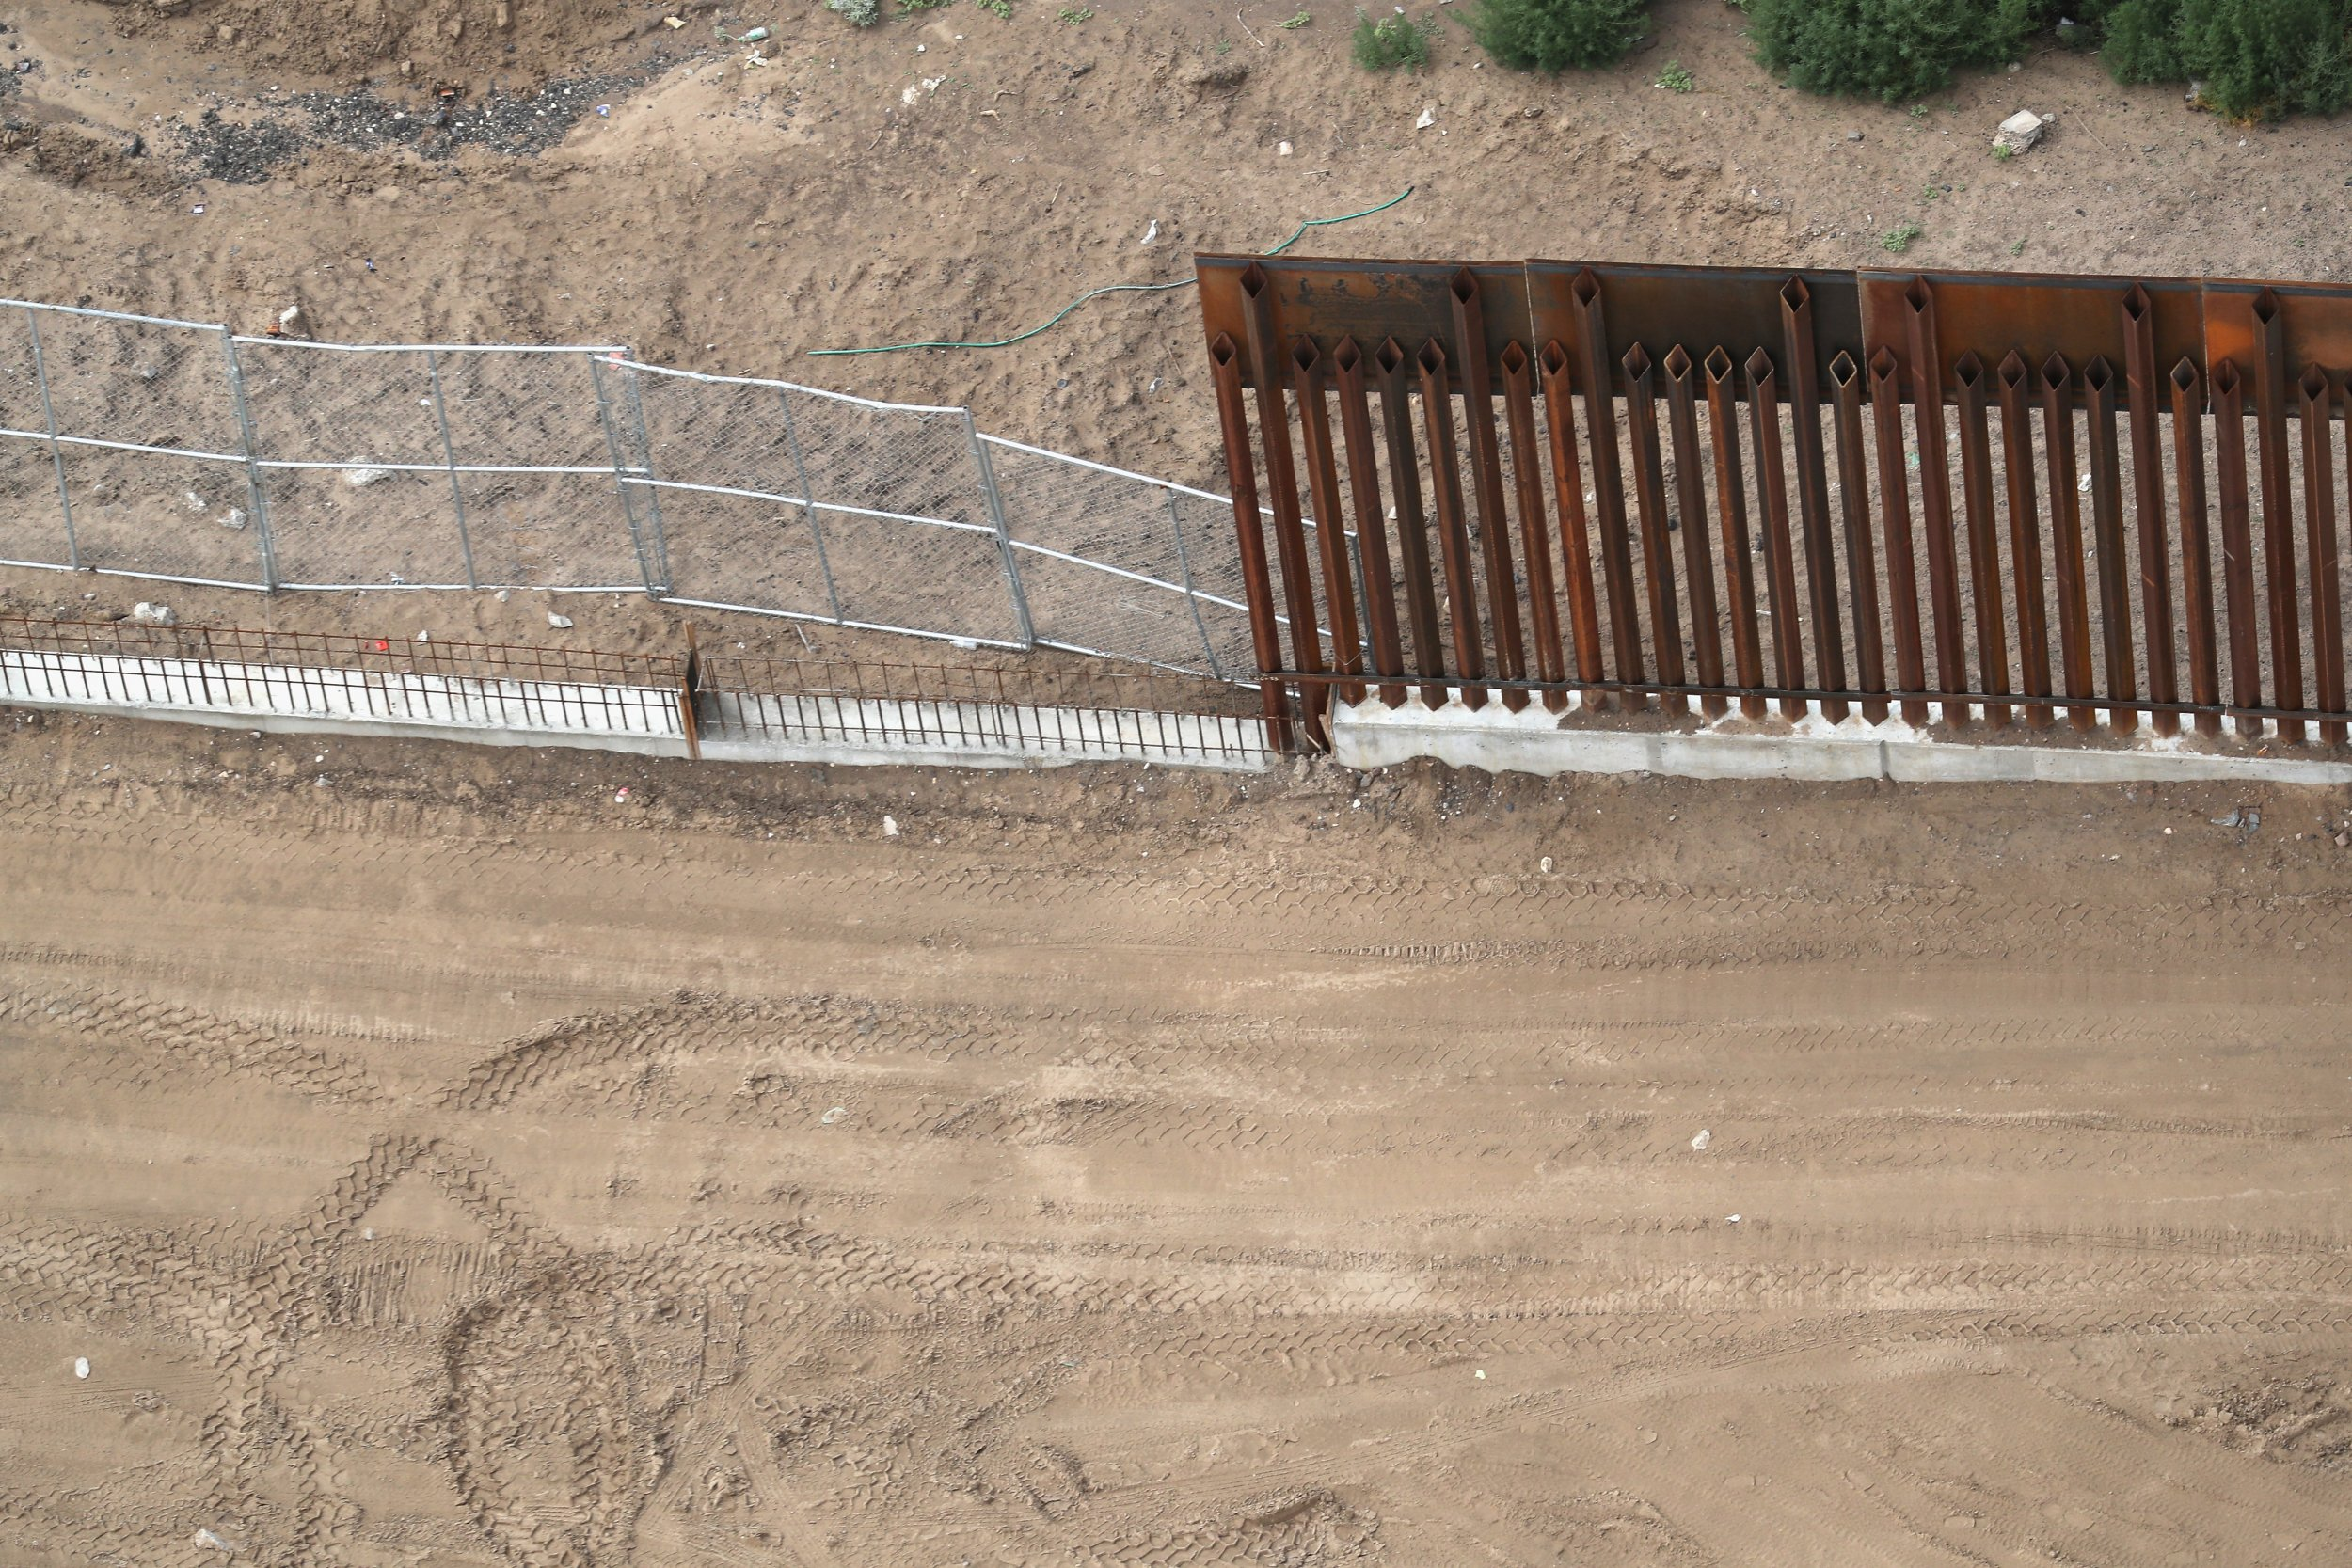 1_28-Mexico border wall